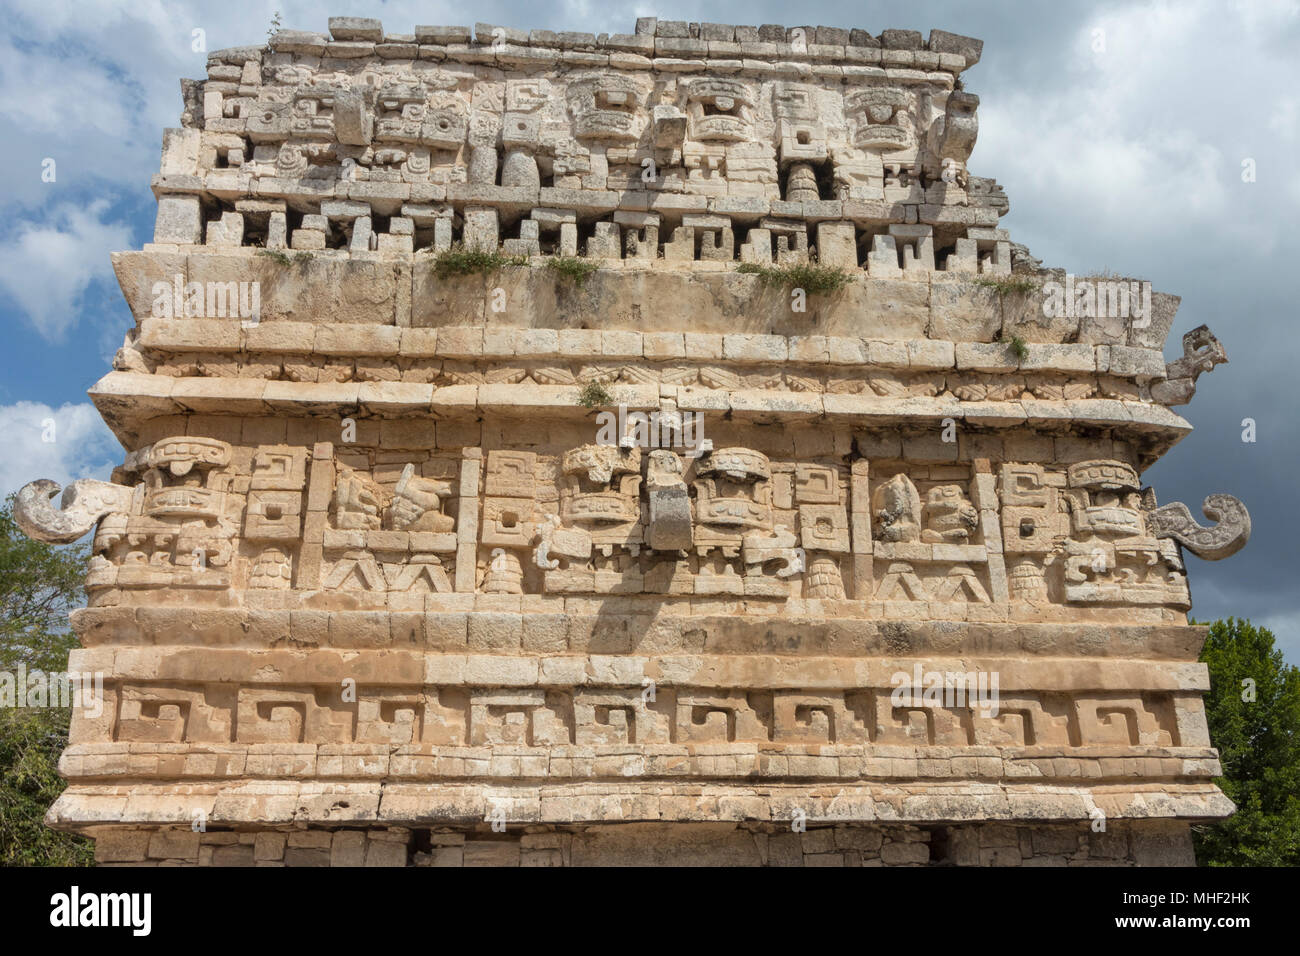 The magician's temple at Mayan ruins Chichen Itza. Impressive Stone building with carved details on every side. The Stone masks on the top floor still - Stock Image